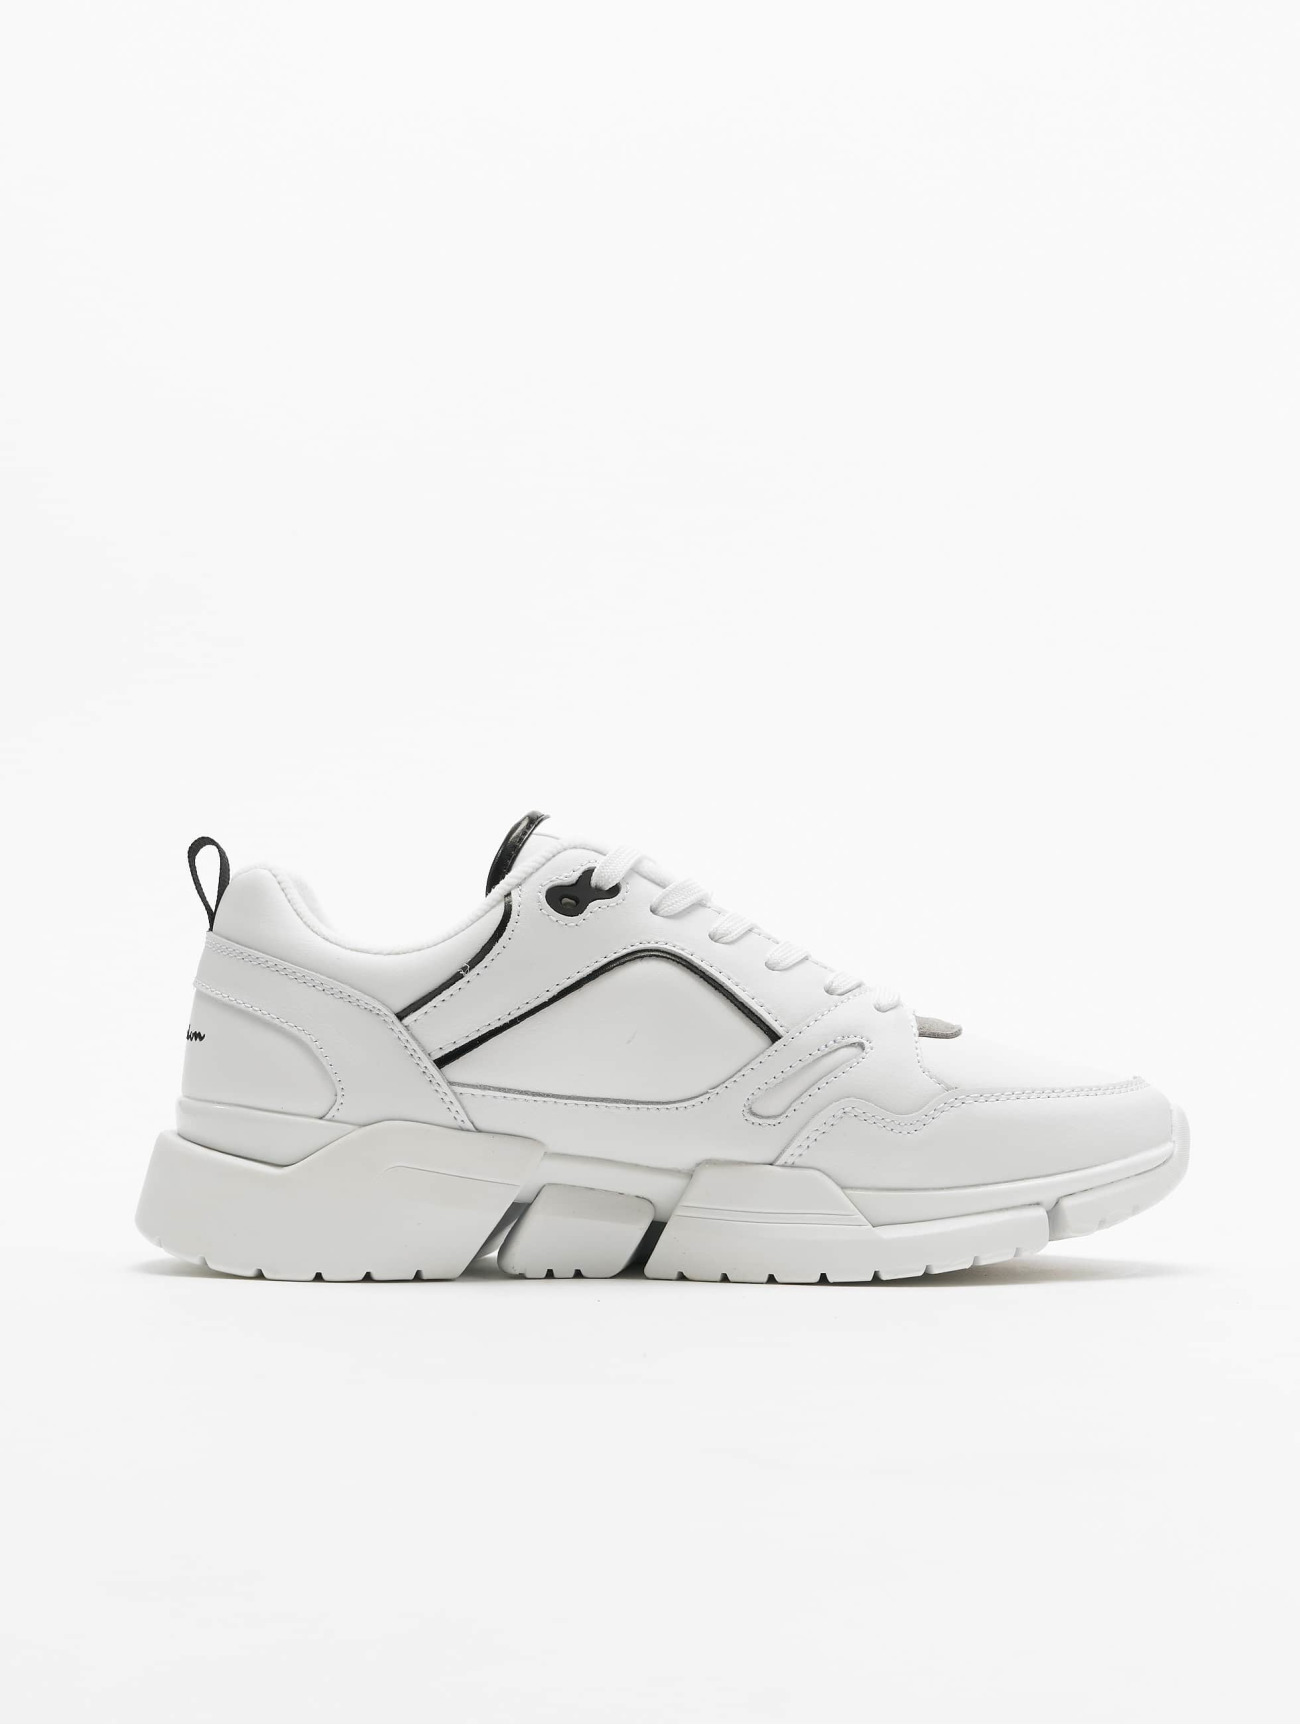 Champion Shoe / Sneakers Rochester Sport Inspired in white 744194